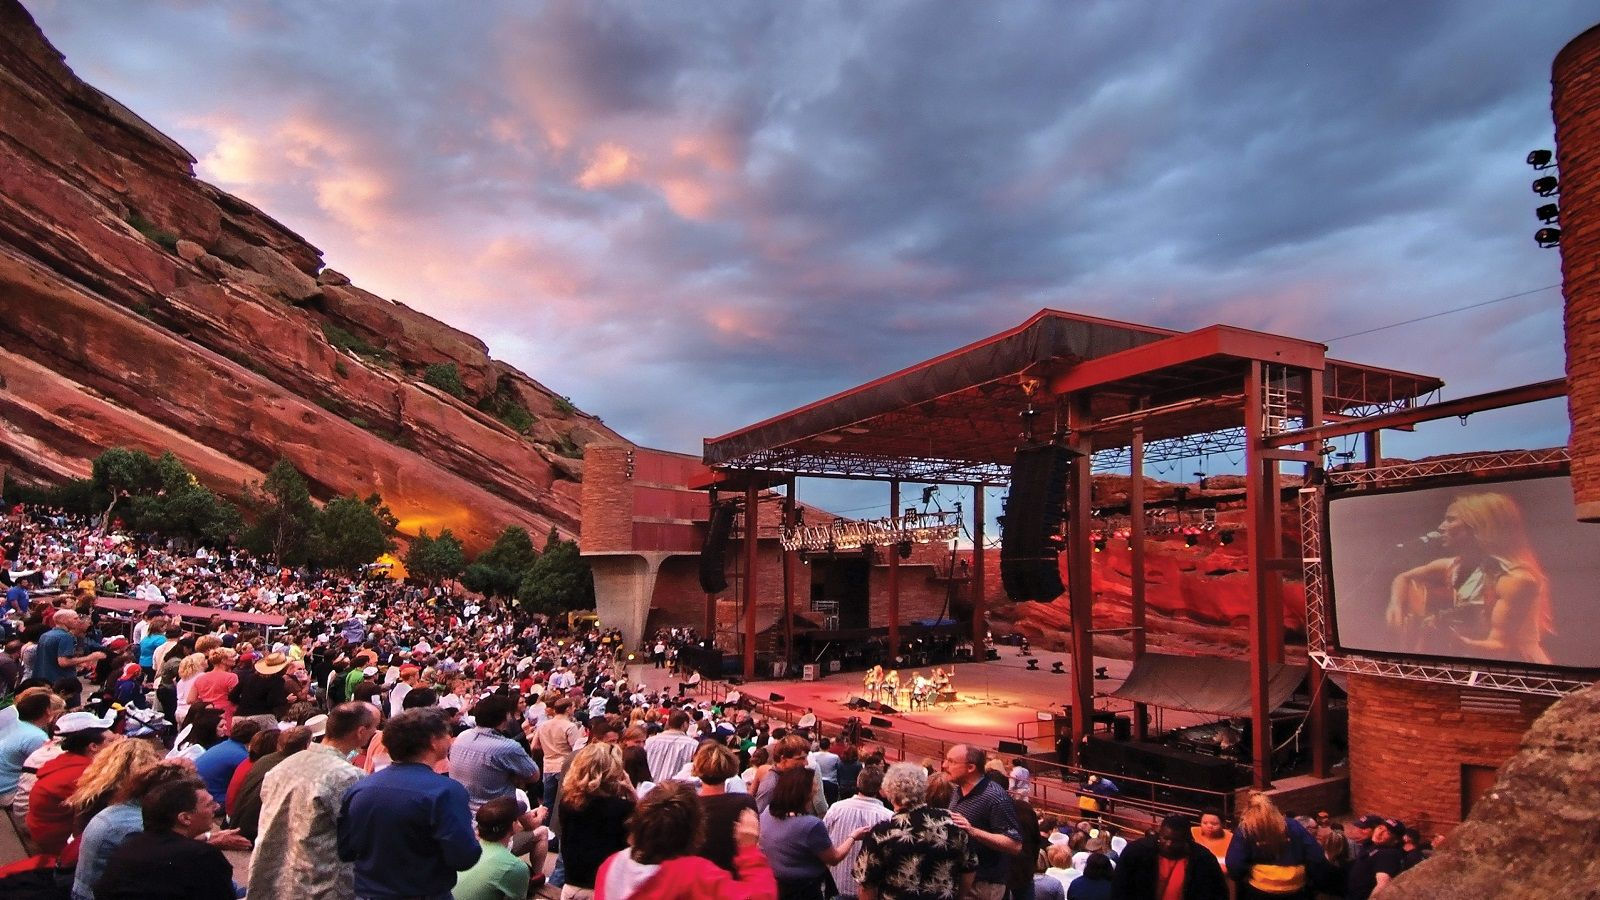 Sheraton Denver West Hotel - Red Rocks Ampitheatre